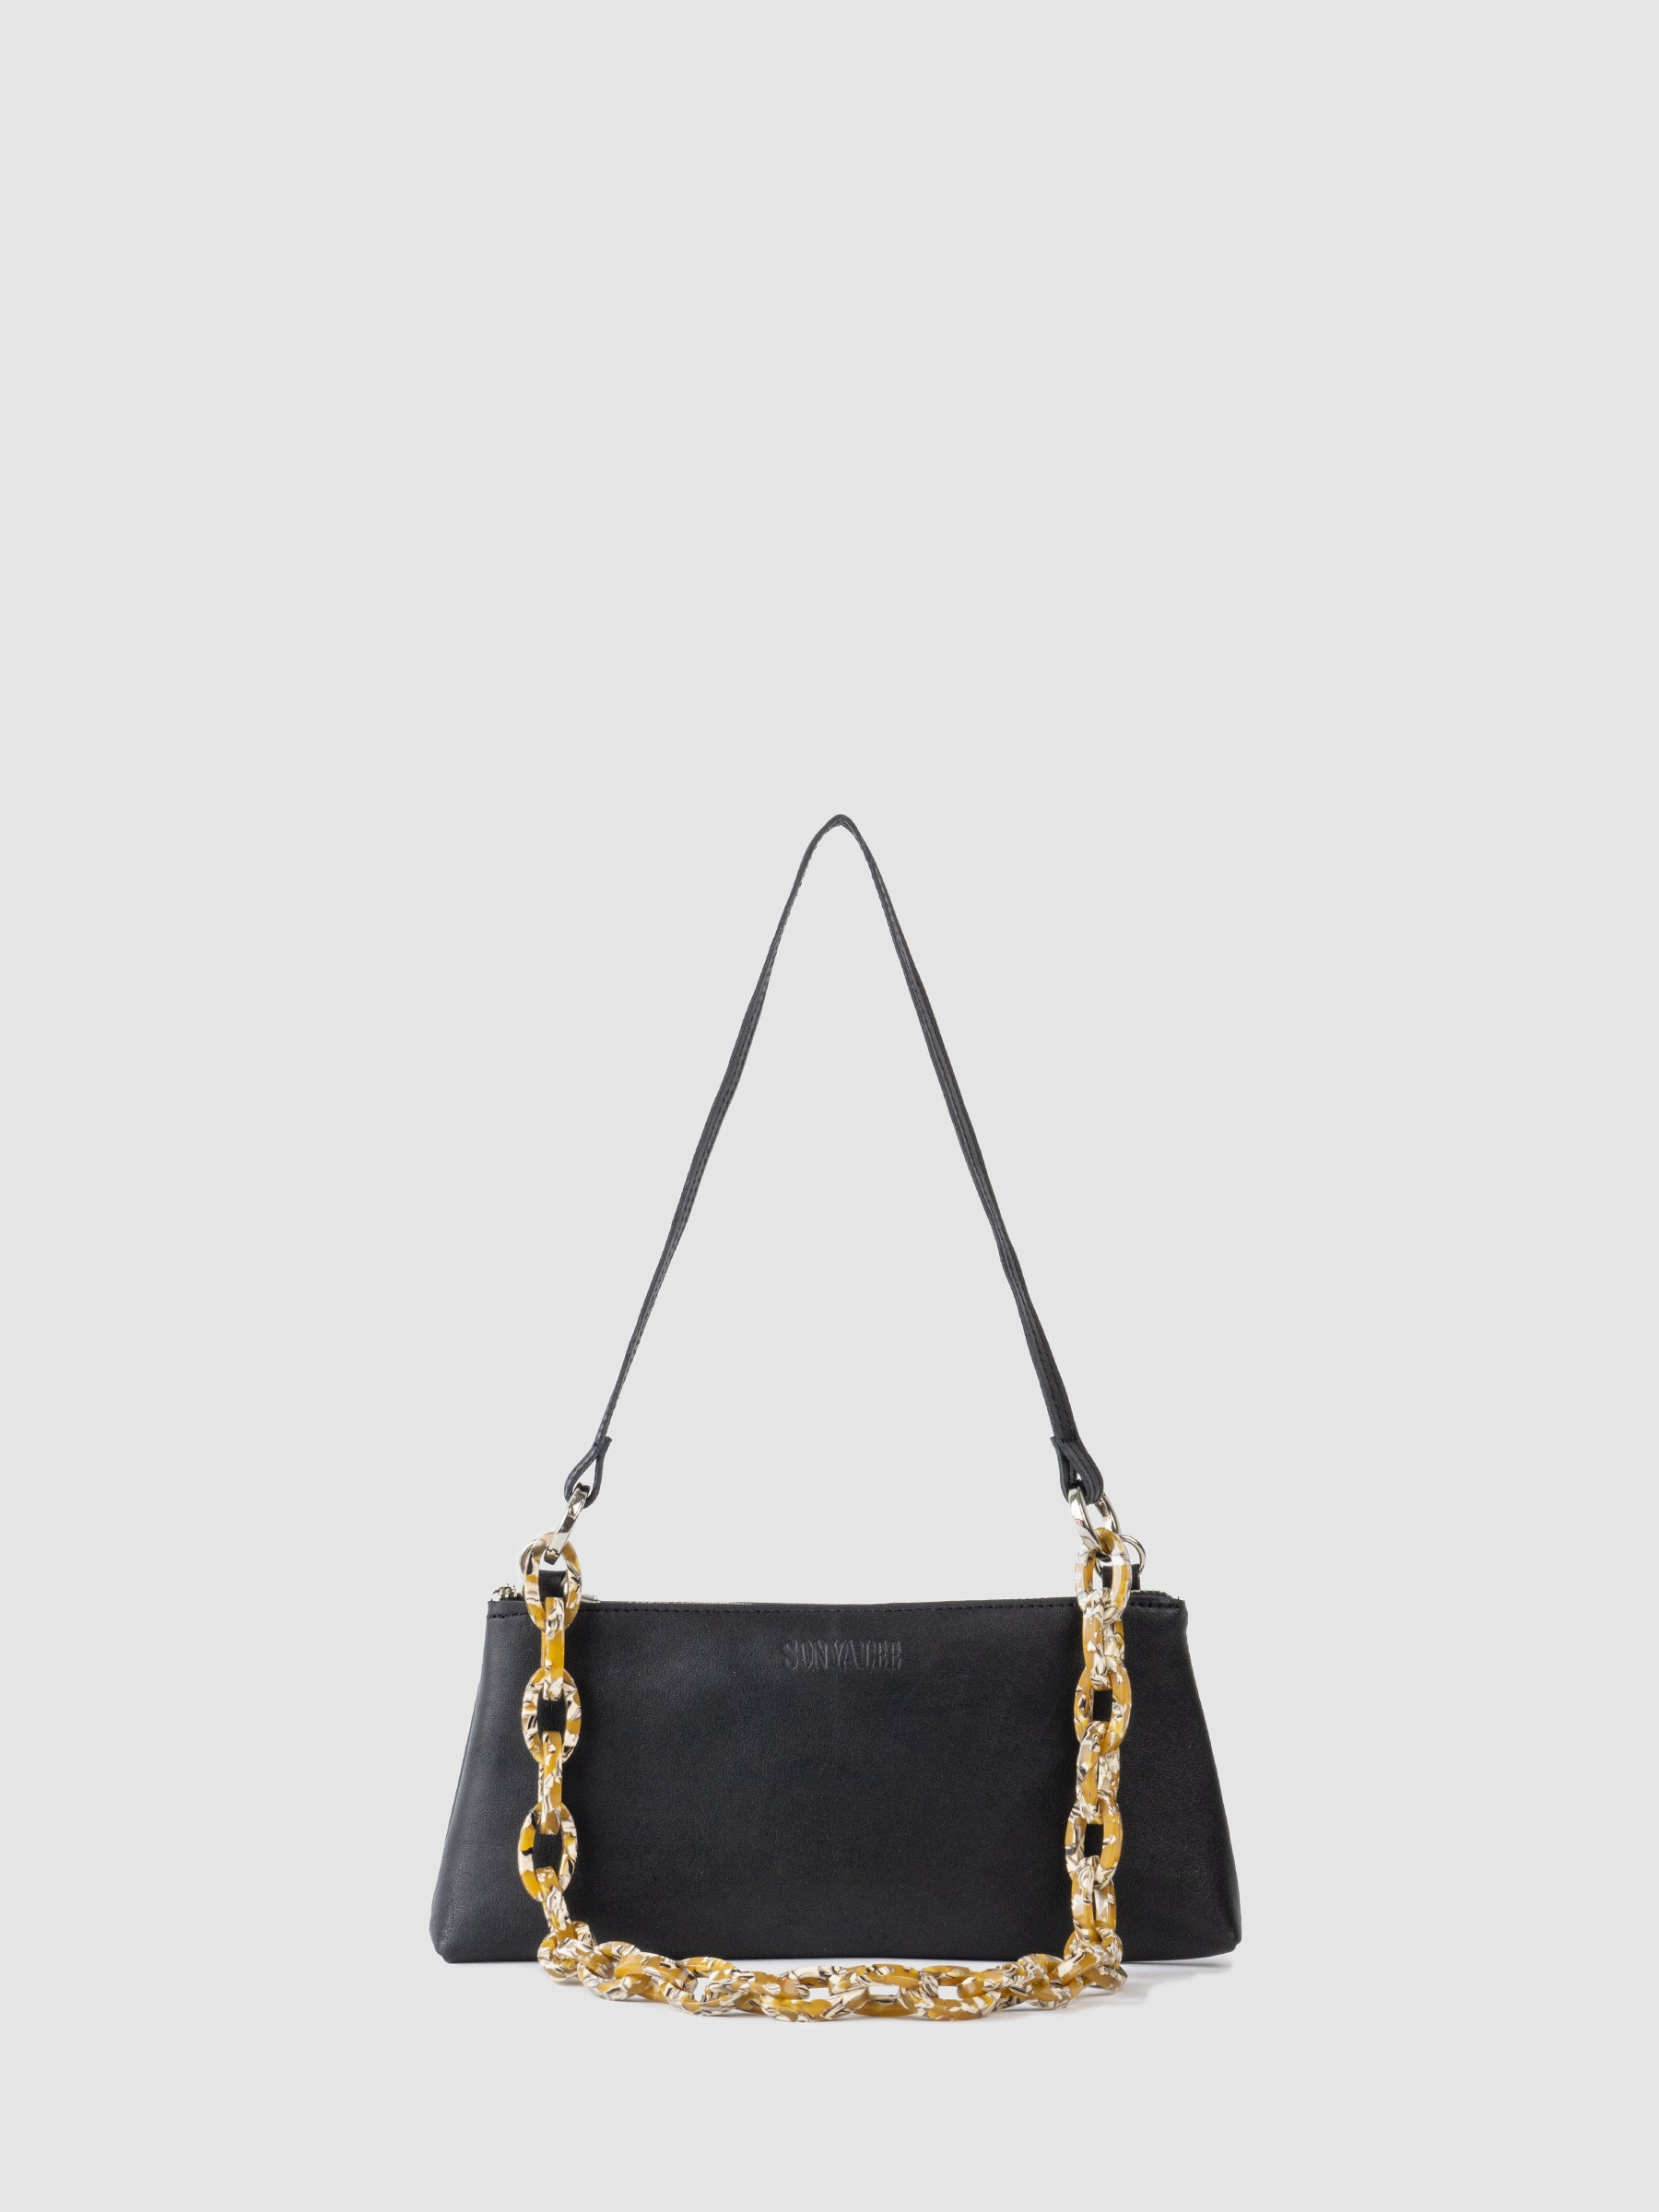 The SONYA LEE Maya mini bag in soft black leather with affogato chain . Ethically handmade in Canada using full grain leather. Lifetime warranty. Fits all the essentials. Zipper Closure. Leather and chain shoulder strap. Free shipping across Canada.